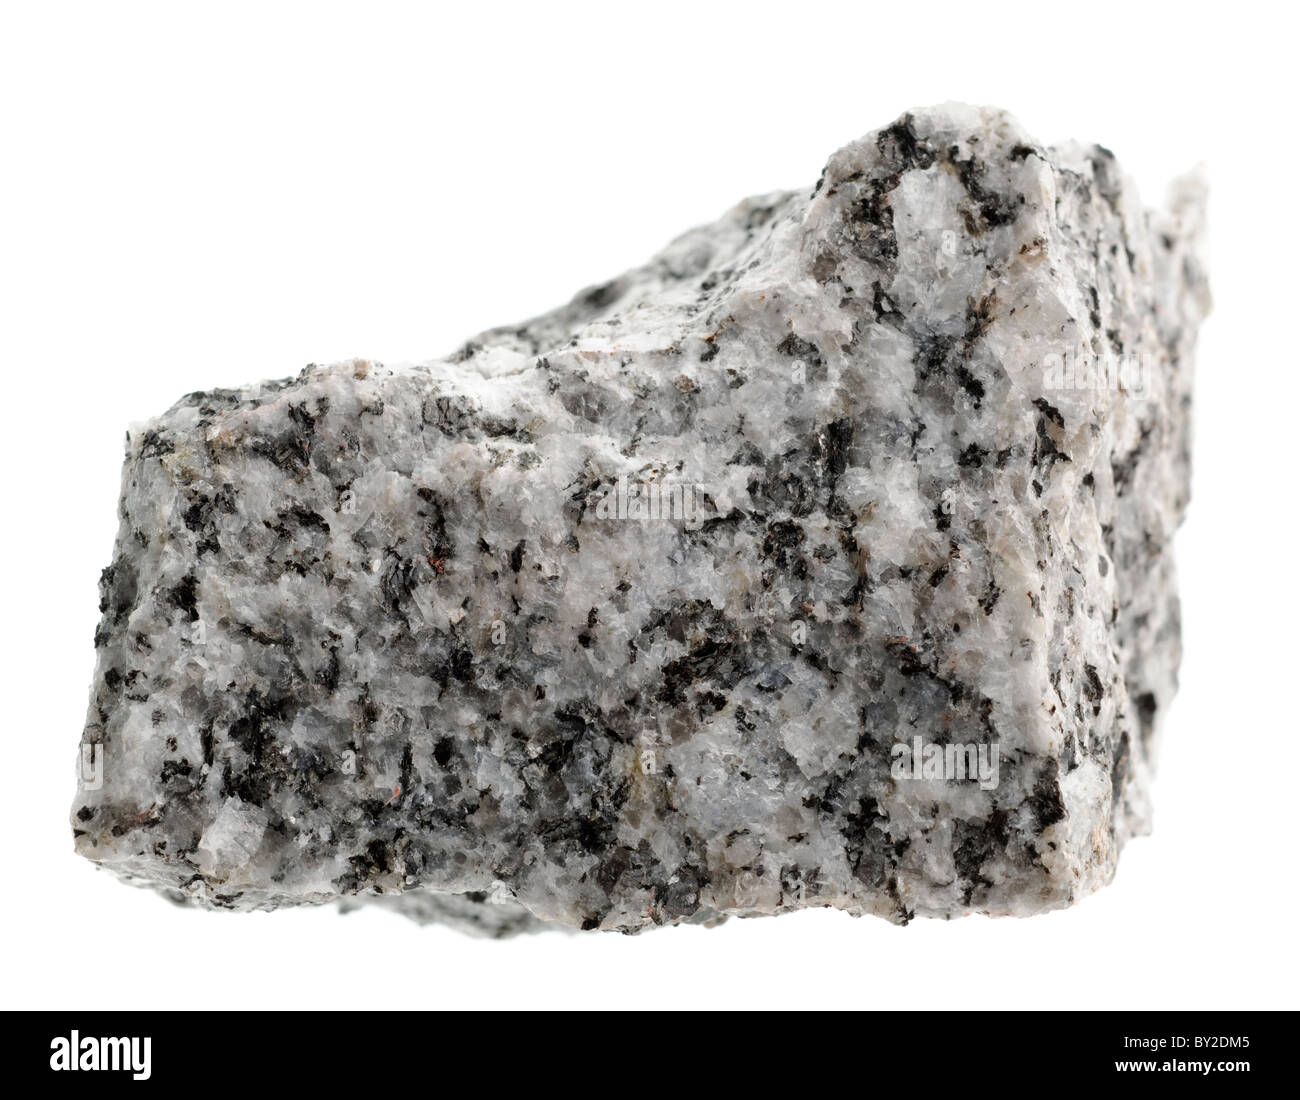 Granite Igneous Rock : Cornish granite igneous rock sample stock photo